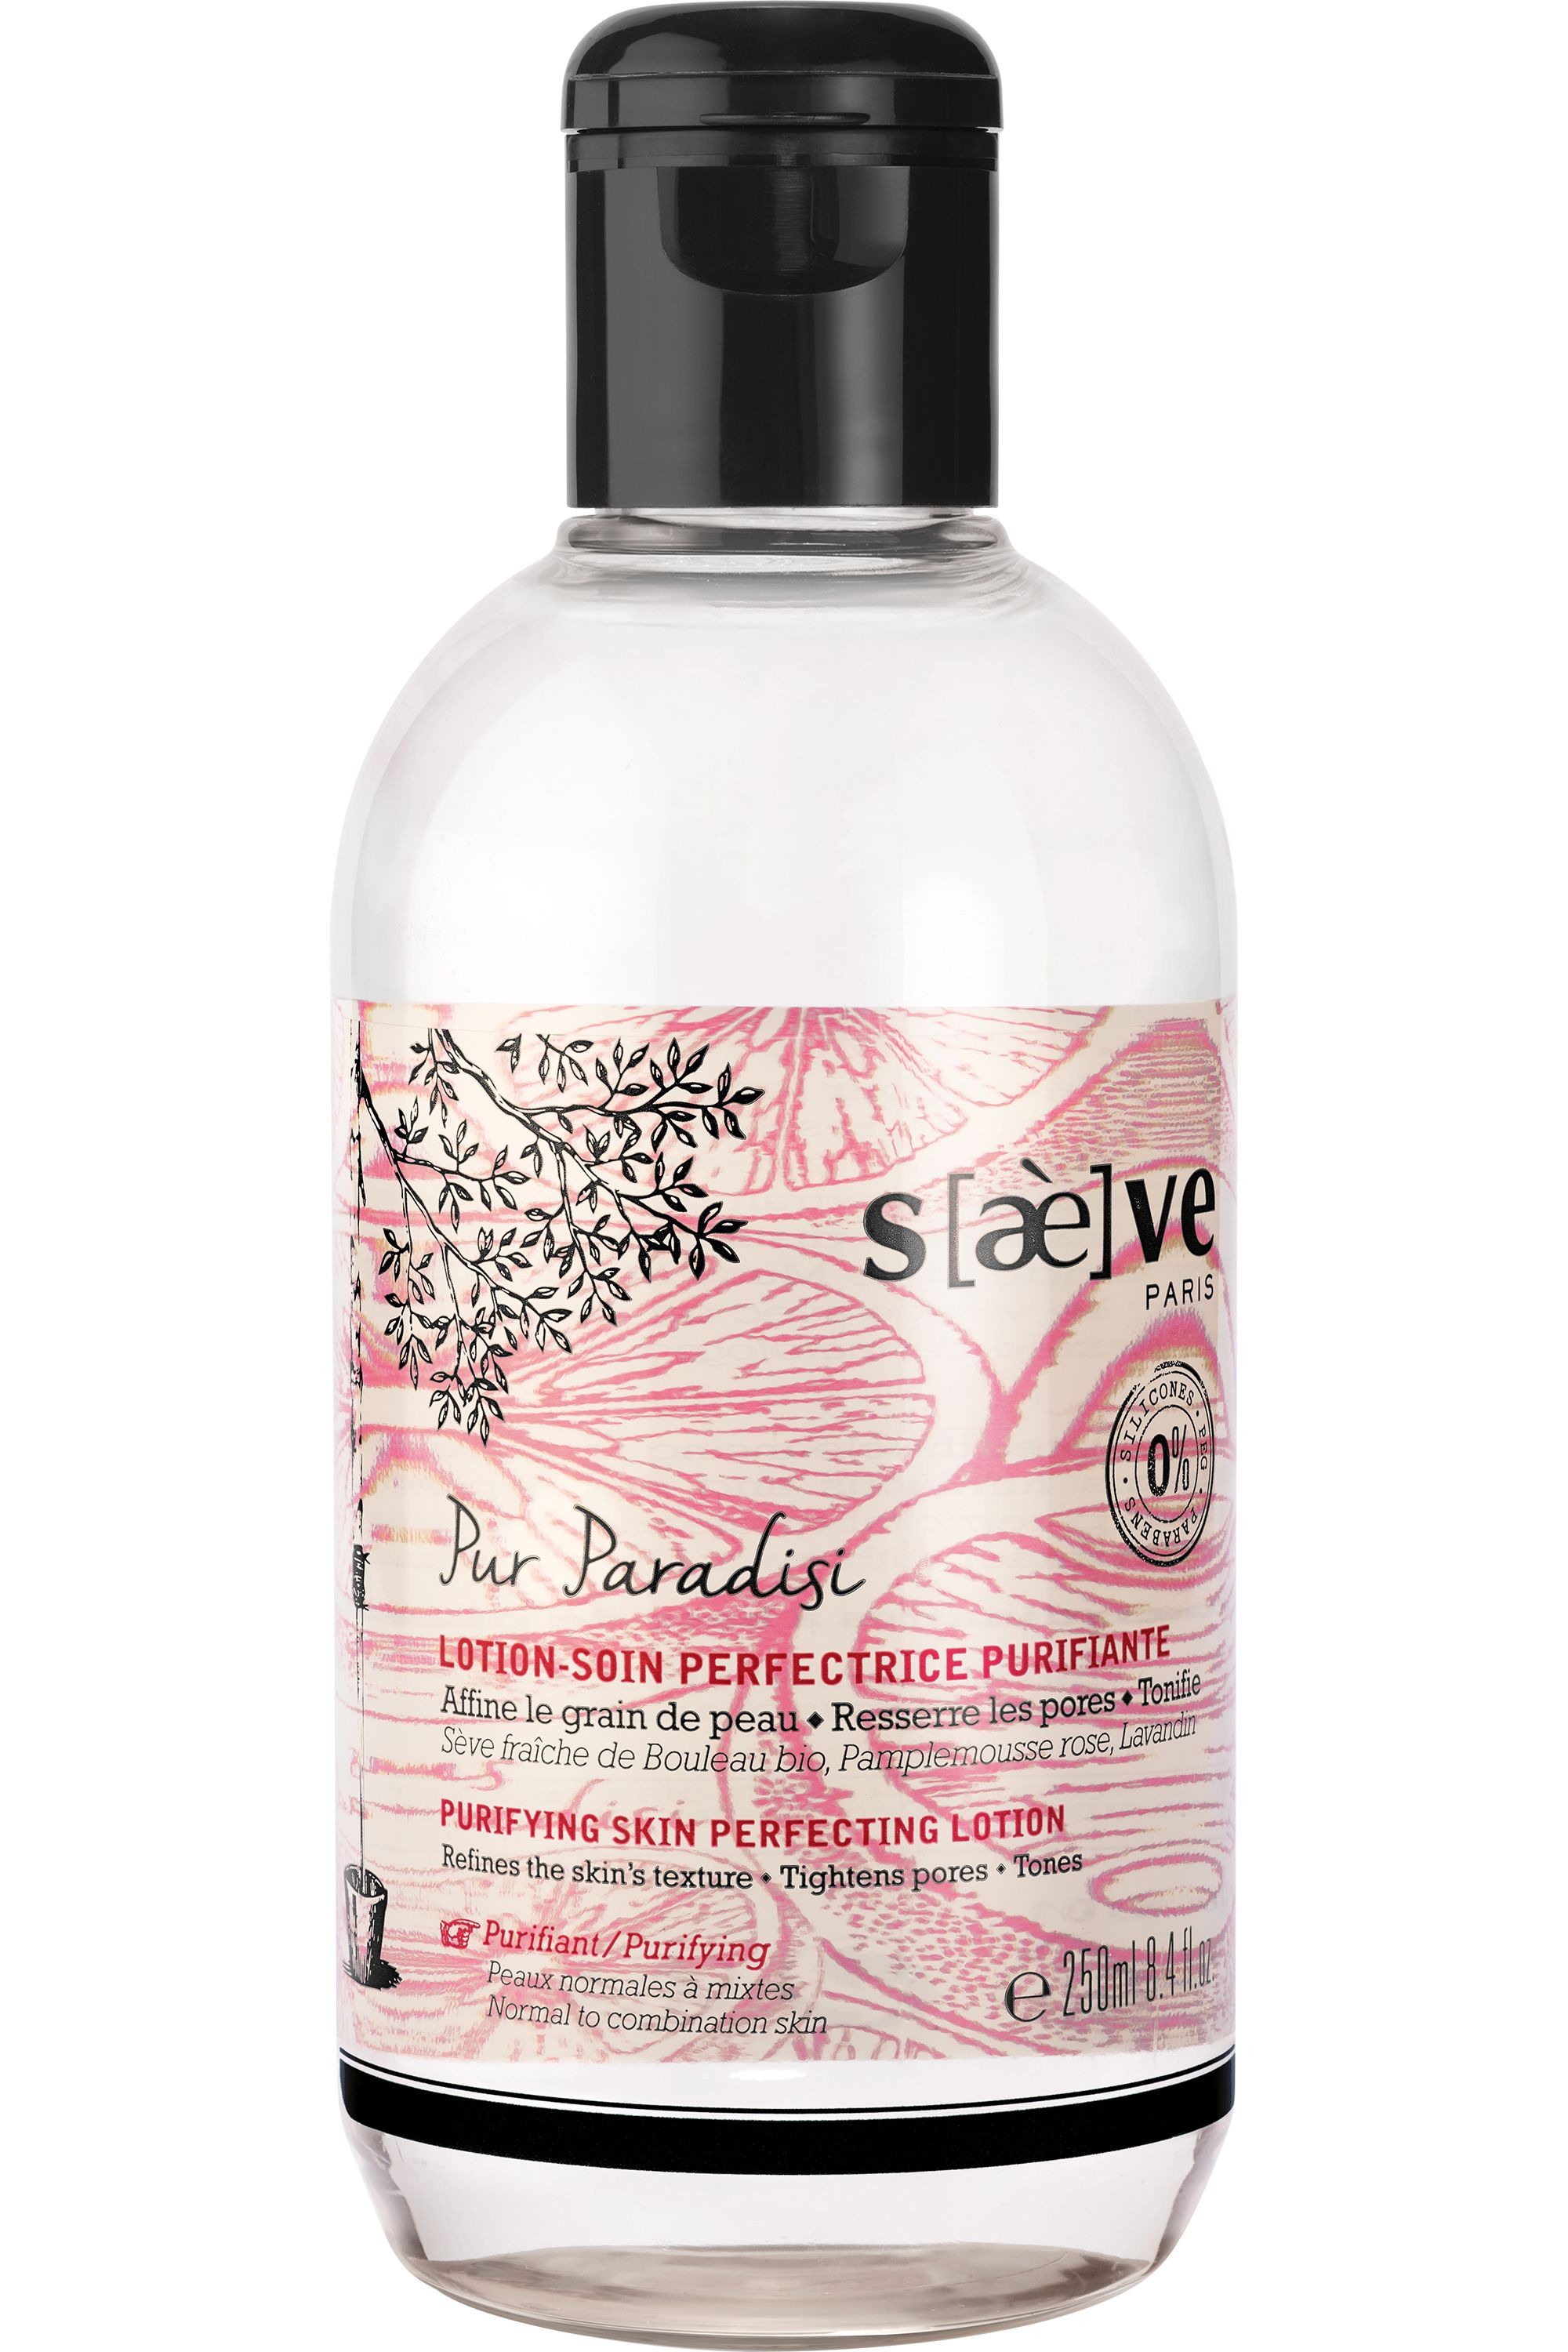 Blissim : Saeve - Lotion-soin perfectrice purifiante Pur Paradisi - Lotion-soin perfectrice purifiante Pur Paradisi